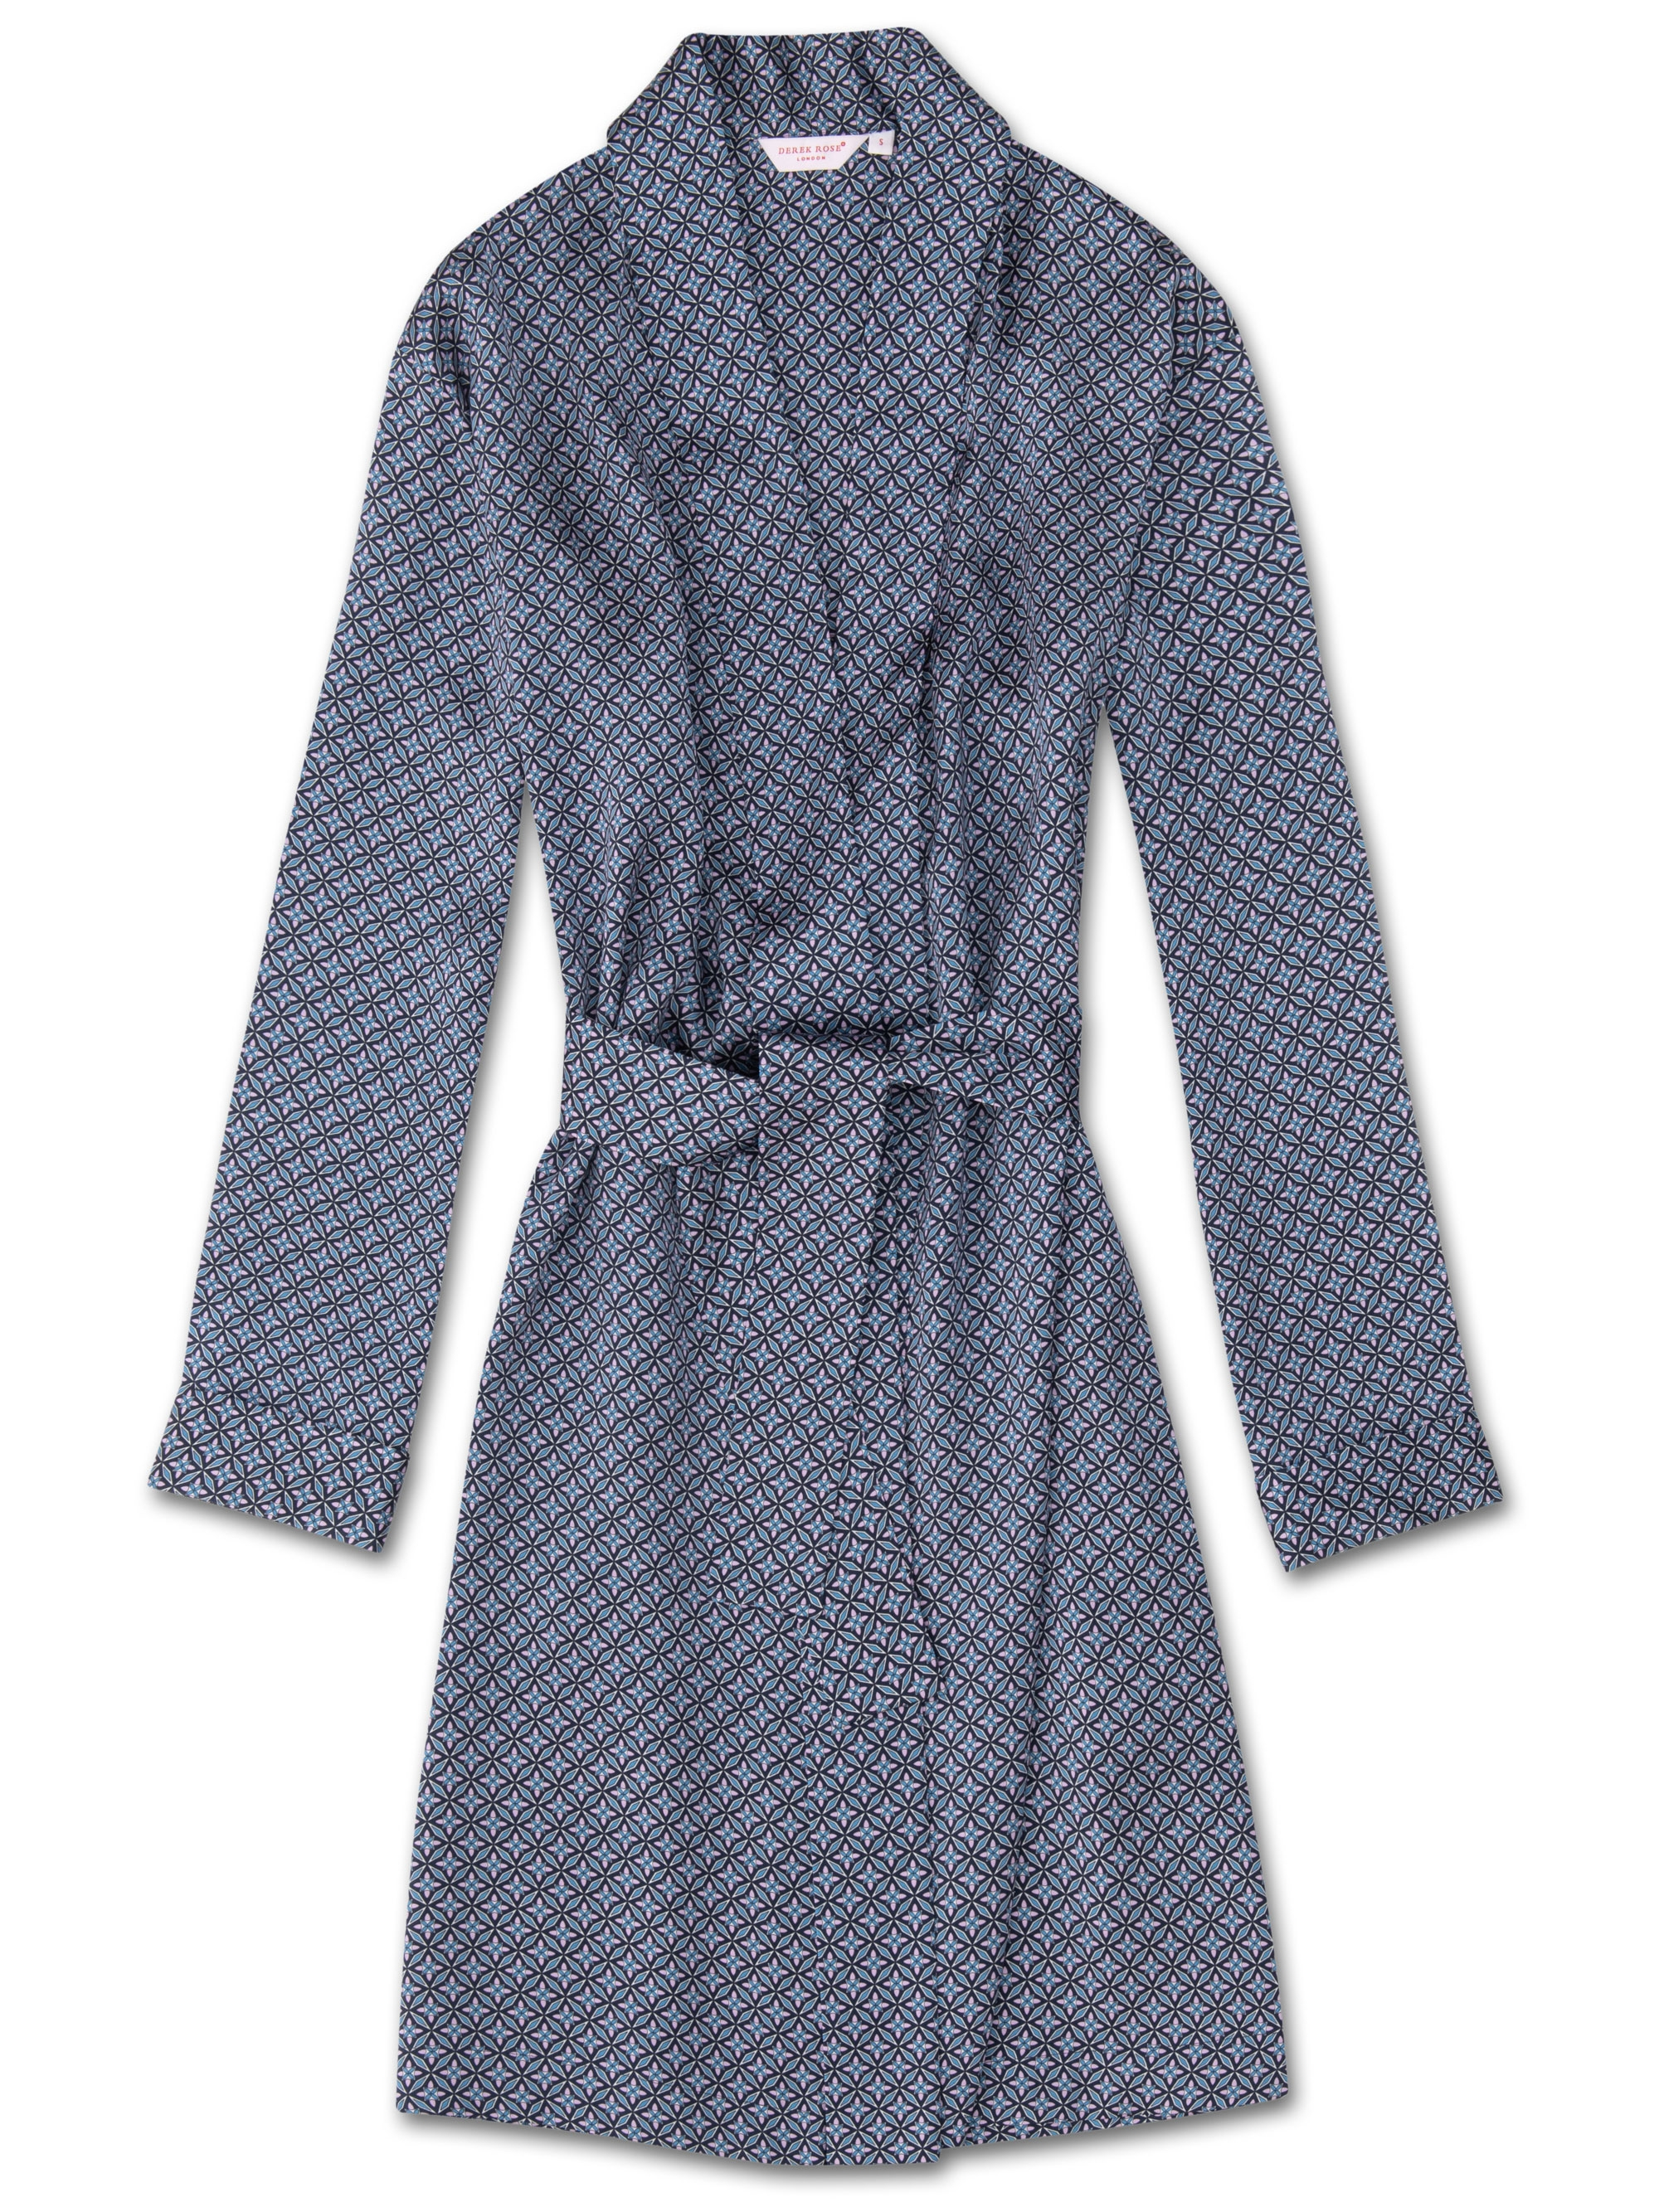 choose original hot-selling cheap highly coveted range of Women's Dressing Gown Brindisi 37 Pure Silk Satin Lilac